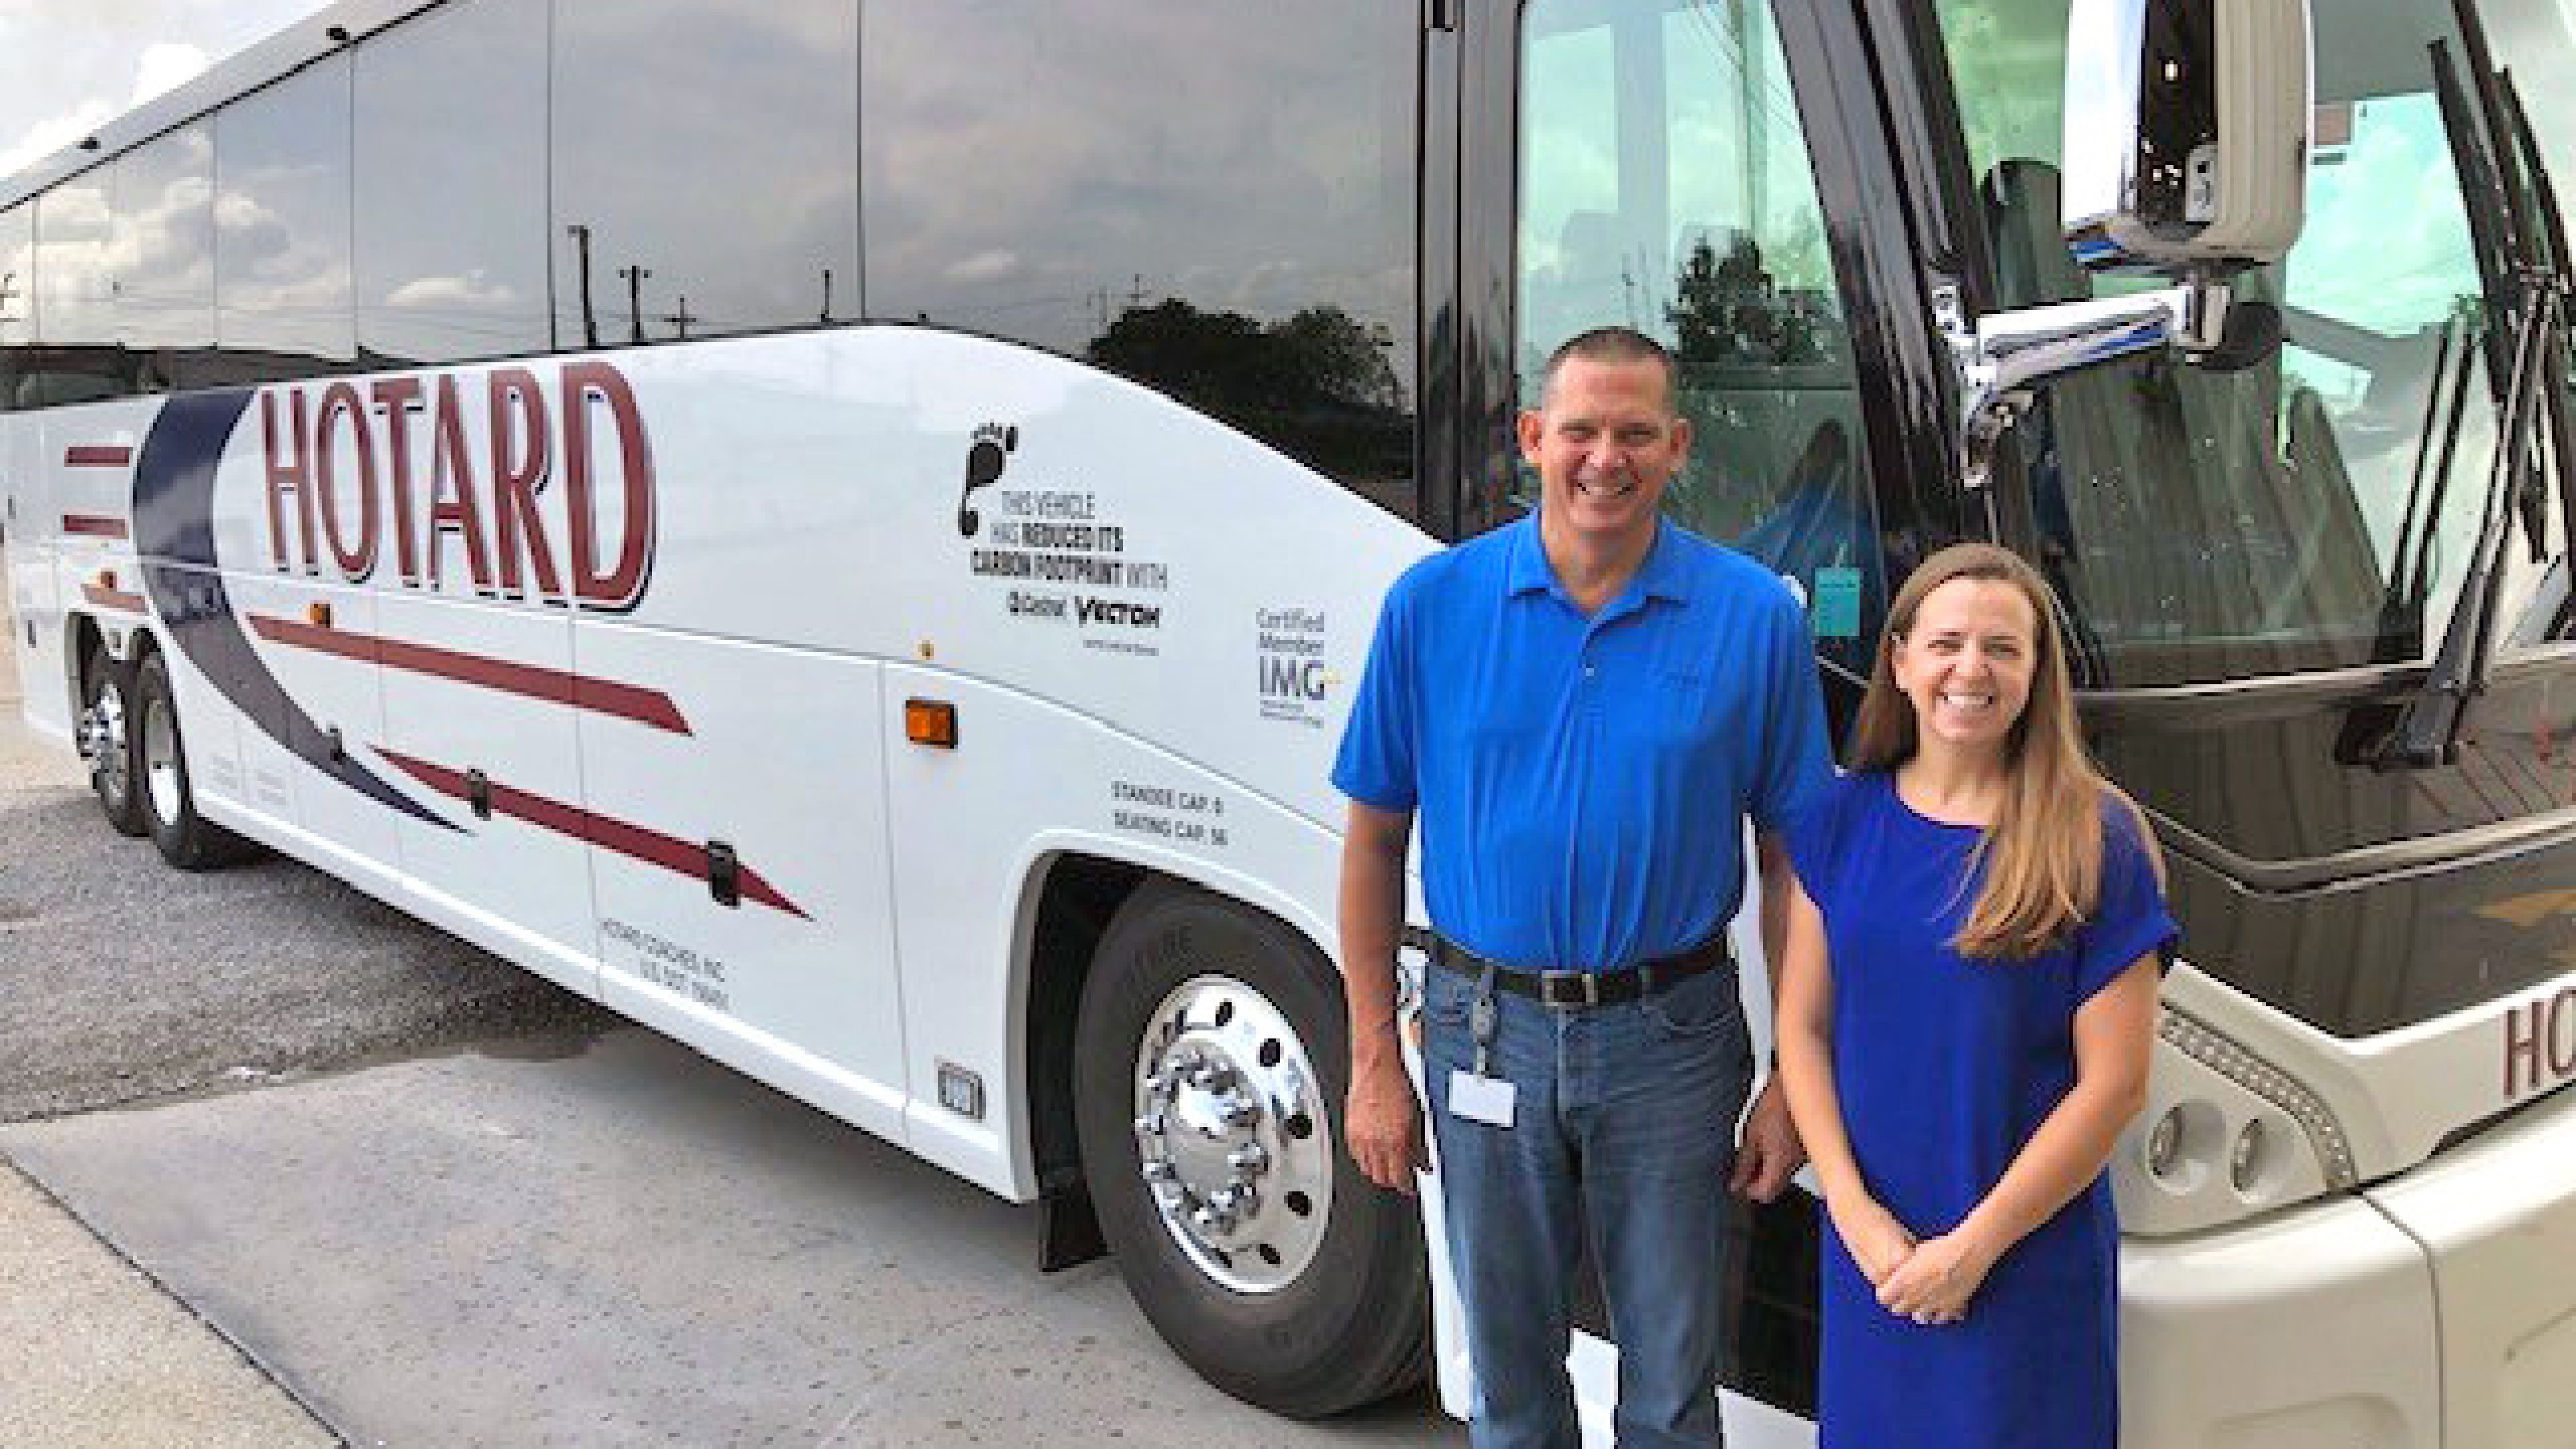 Michael Hoover, Director of Maintenance for Hotard Coaches and Julie Chalmers, General Manager for Hotard Coaches